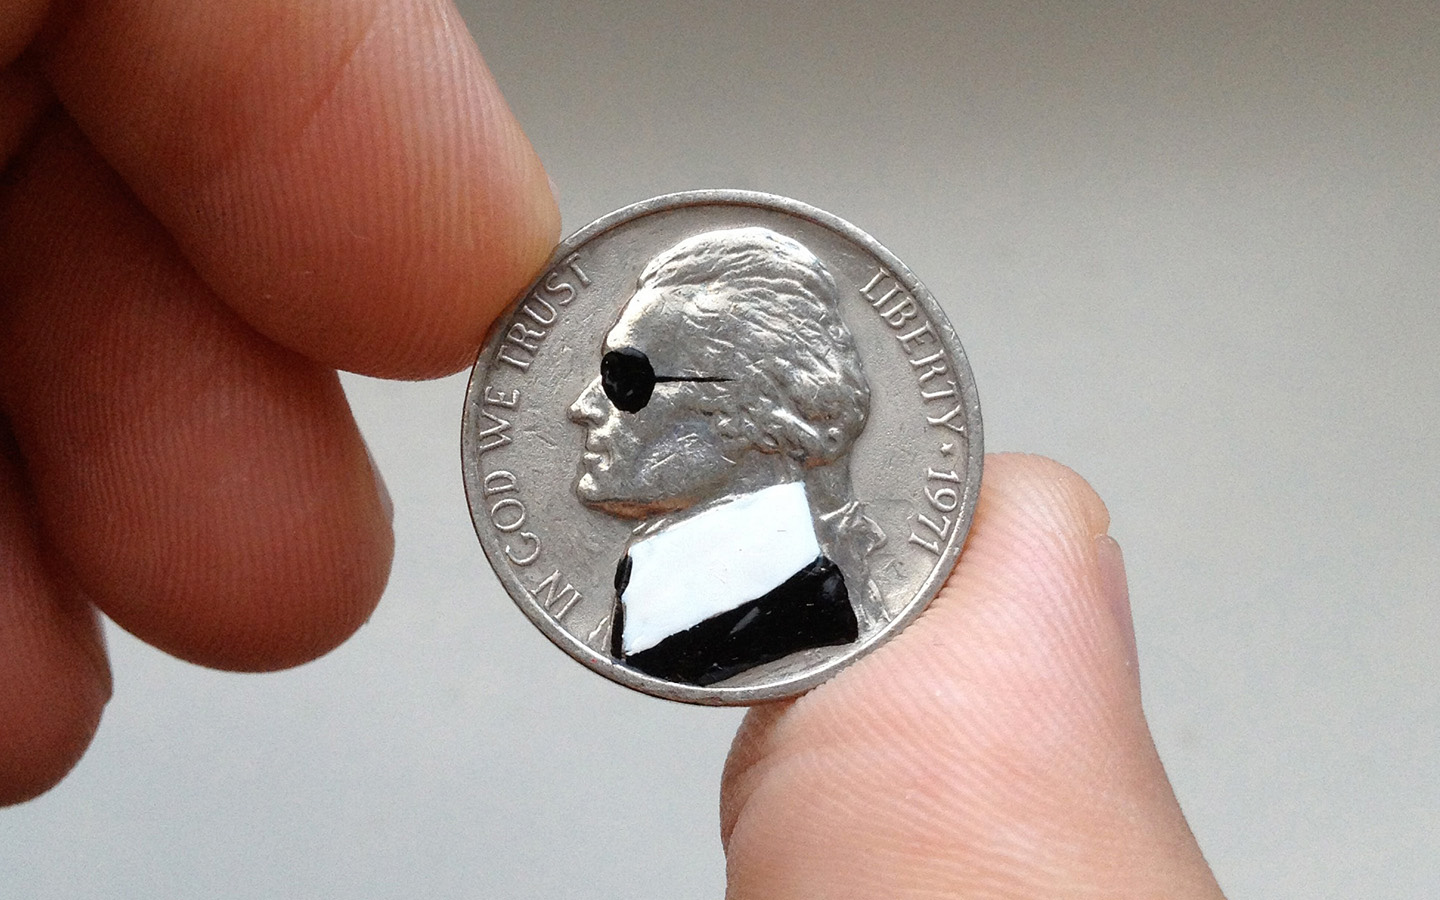 pop_art_andre_levy_zhion_coin_talesyoulose_portrait_money_karl_lagerfeld_miniature.jpg